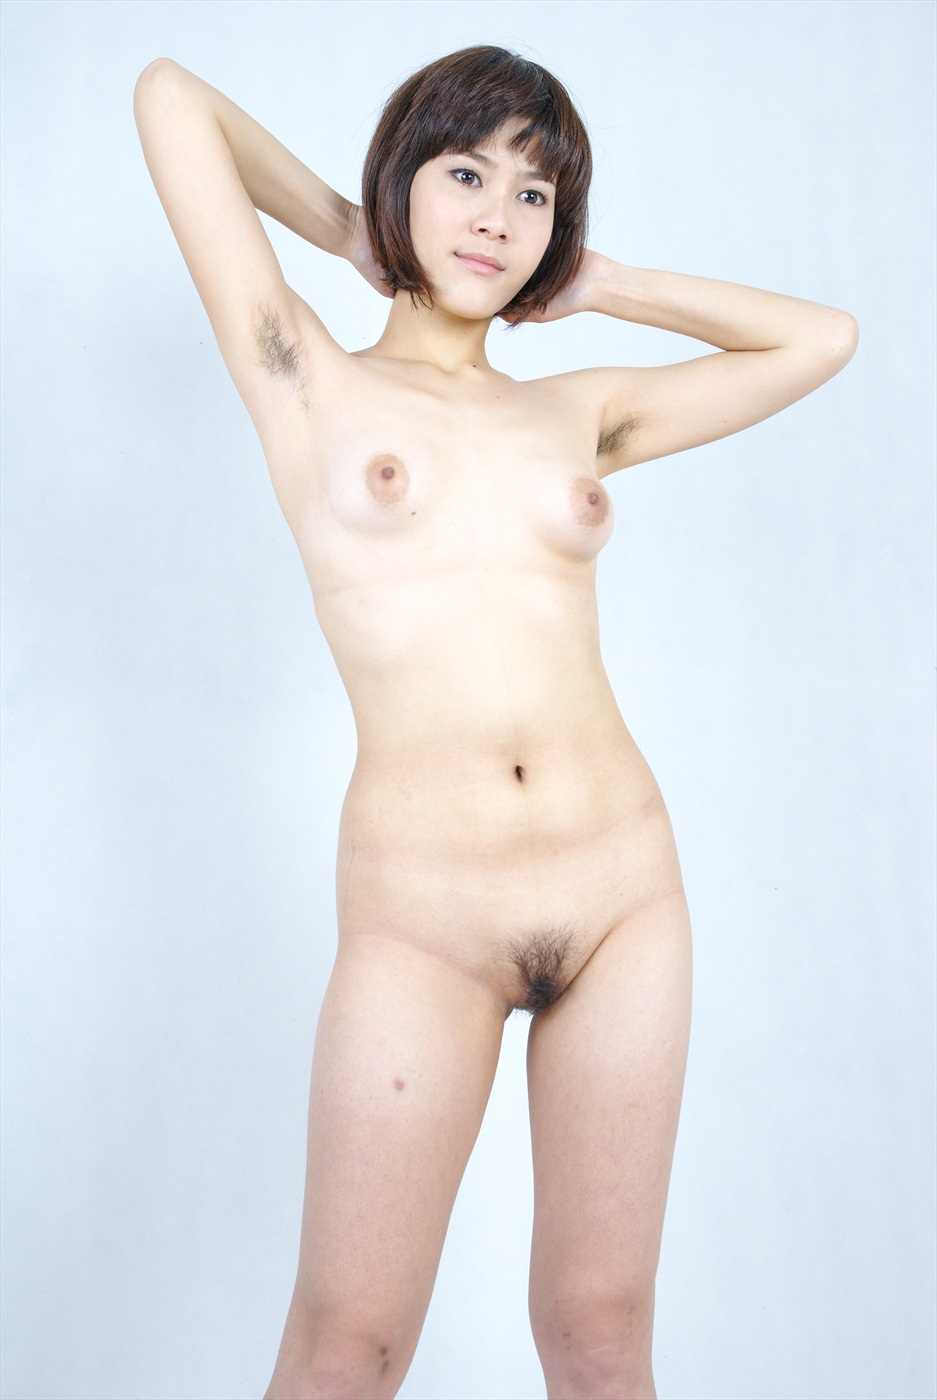 Shorthair ginger naked girl